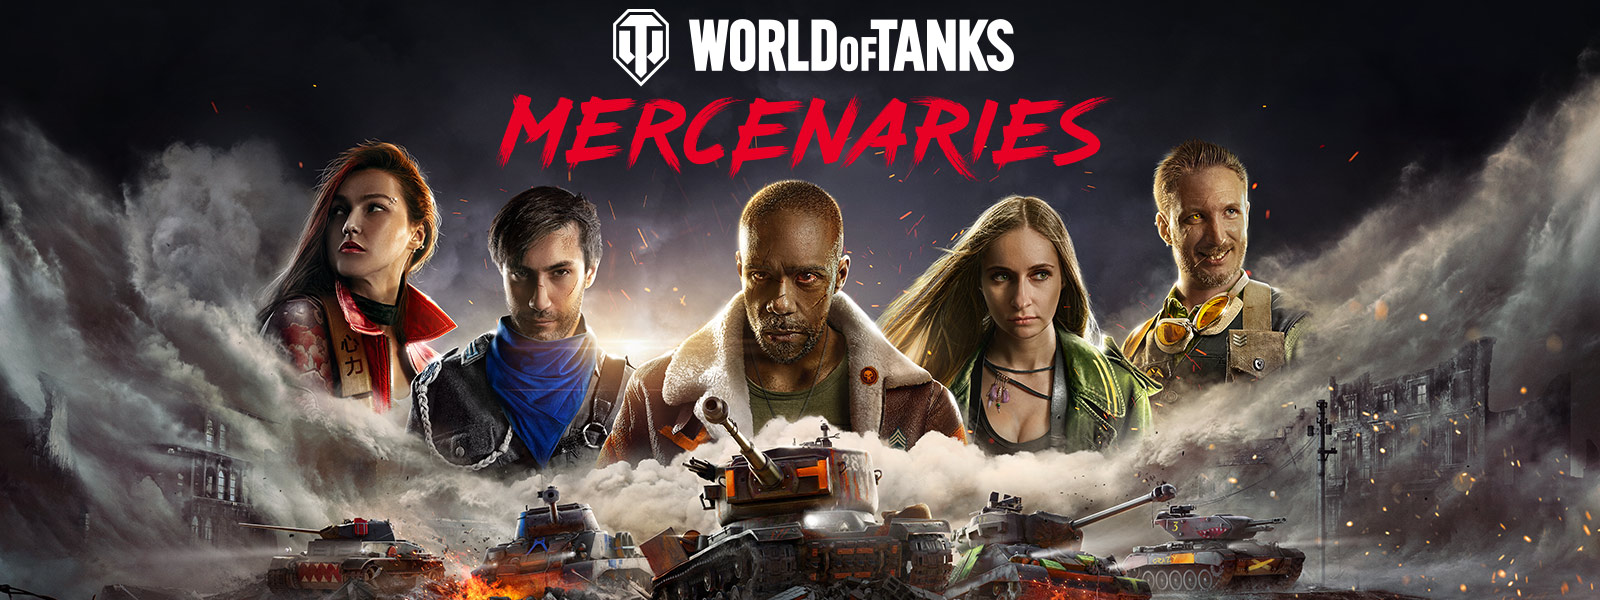 World of Tanks Mercenaries, pięć postaci i czołgów